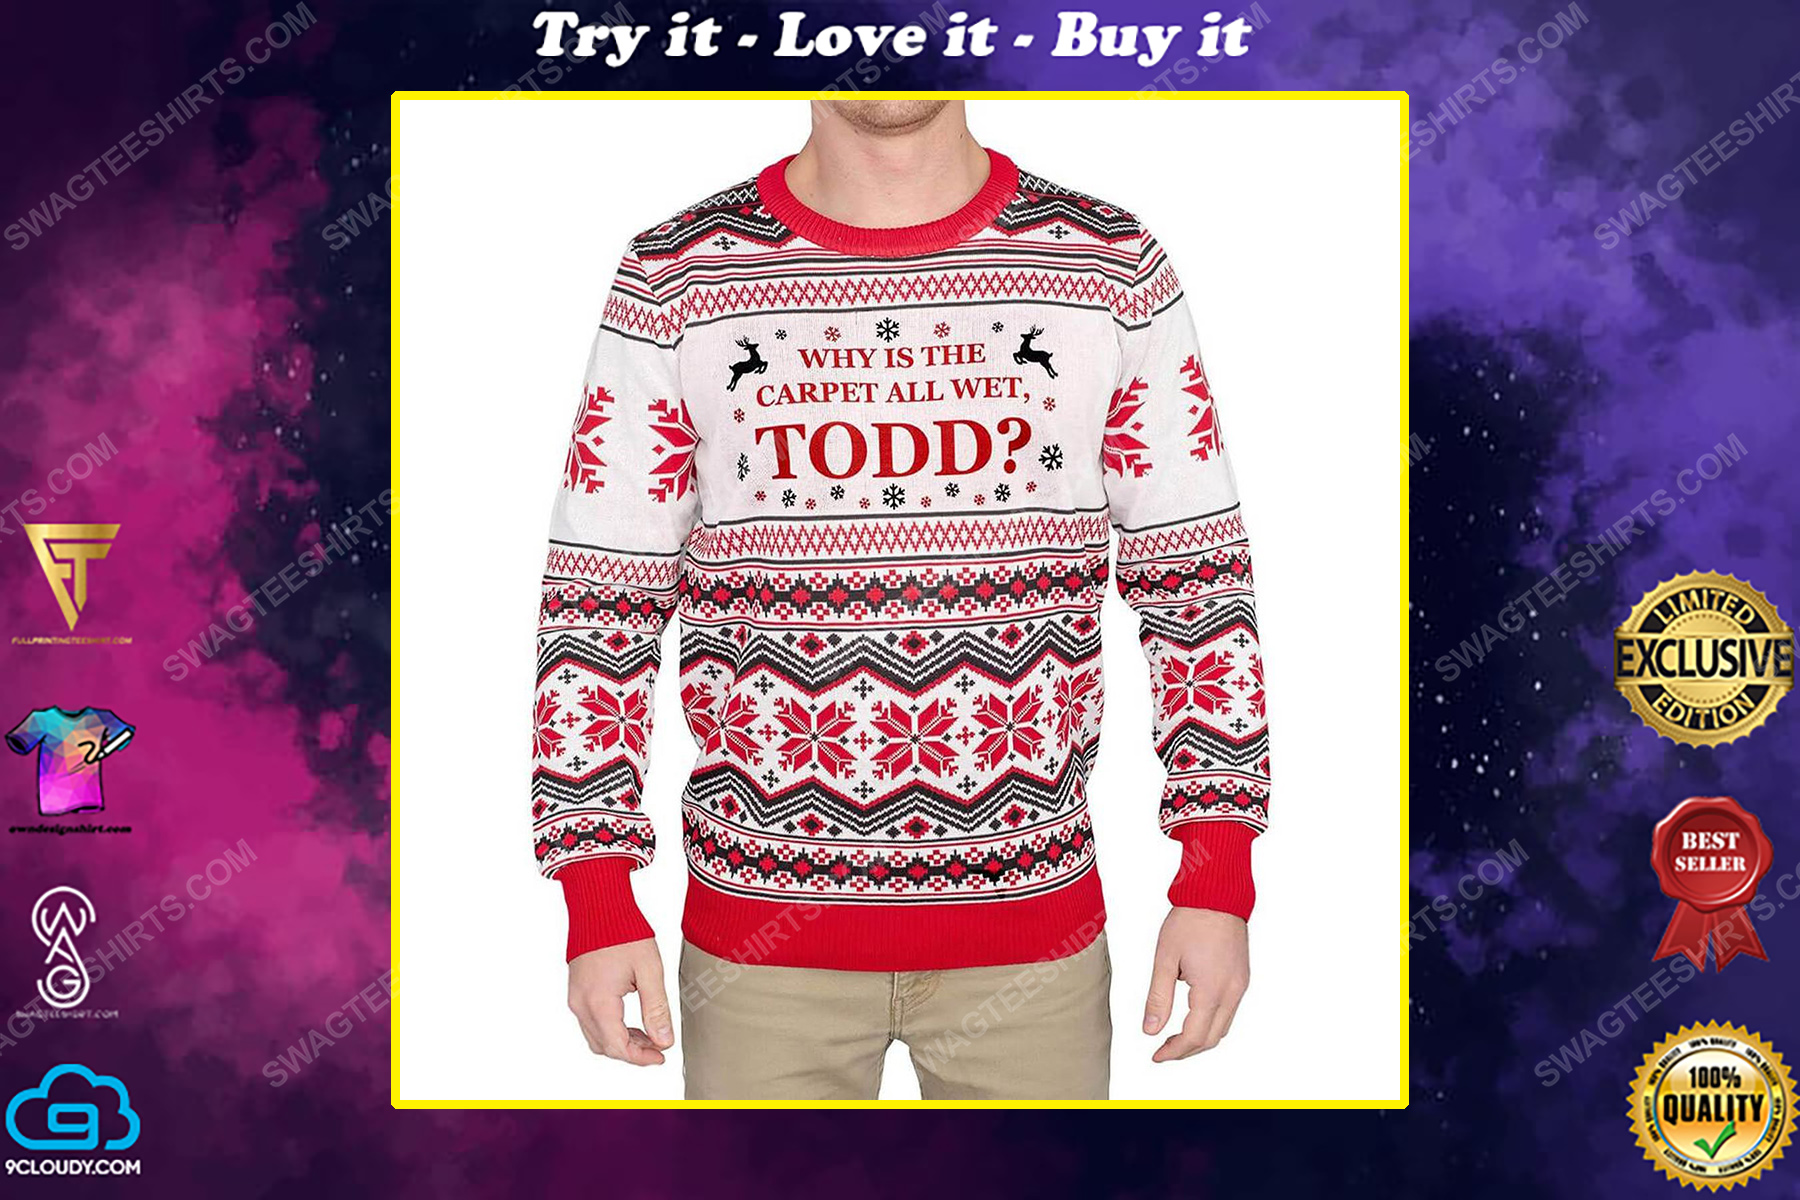 Why is the carpet all wet todd full print ugly christmas sweater